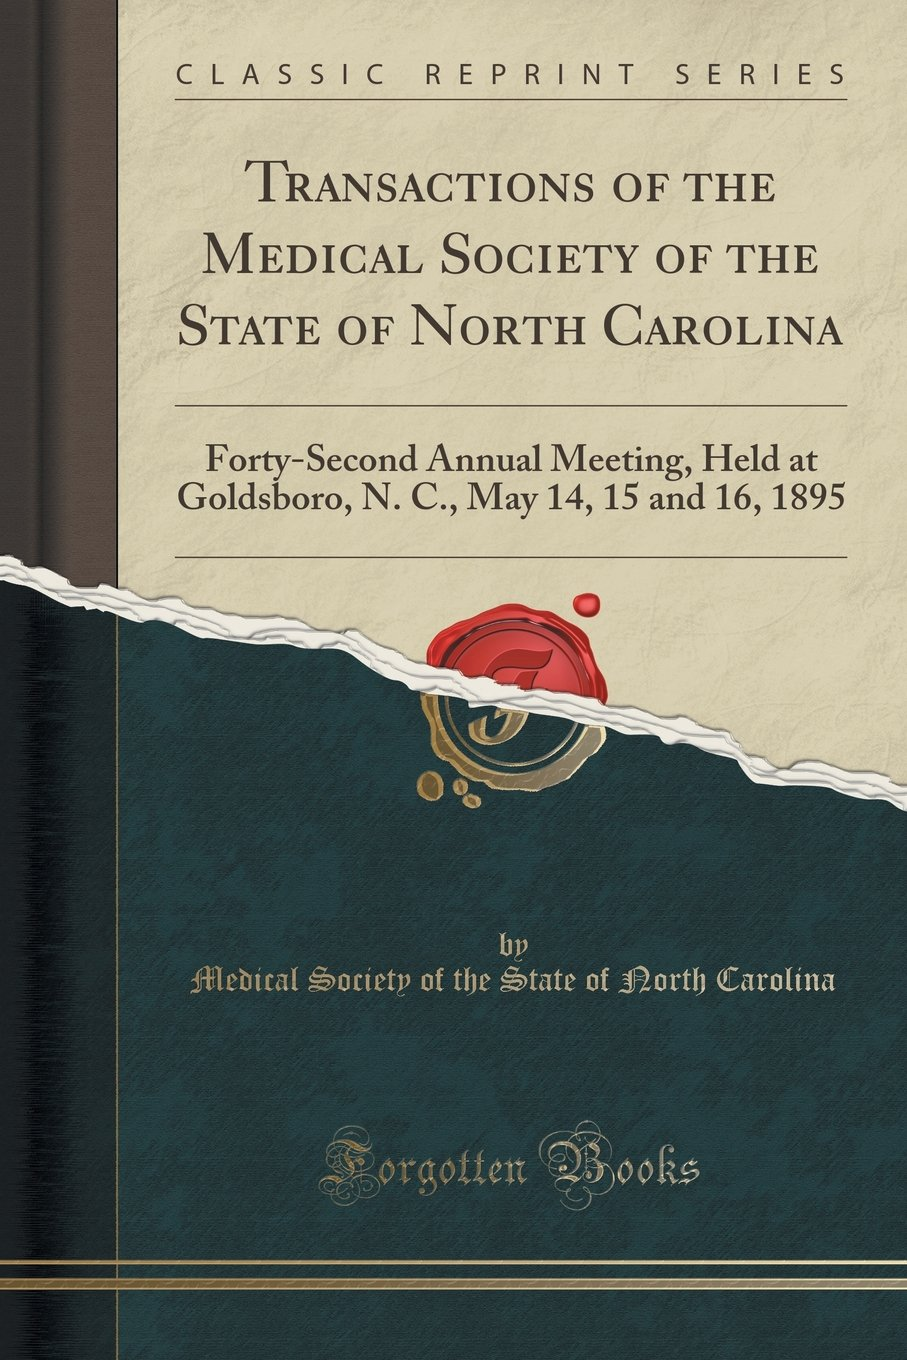 Transactions of the Medical Society of the State of North Carolina: Forty-Second Annual Meeting, Held at Goldsboro, N. C., May 14, 15 and 16, 1895 (Classic Reprint) PDF